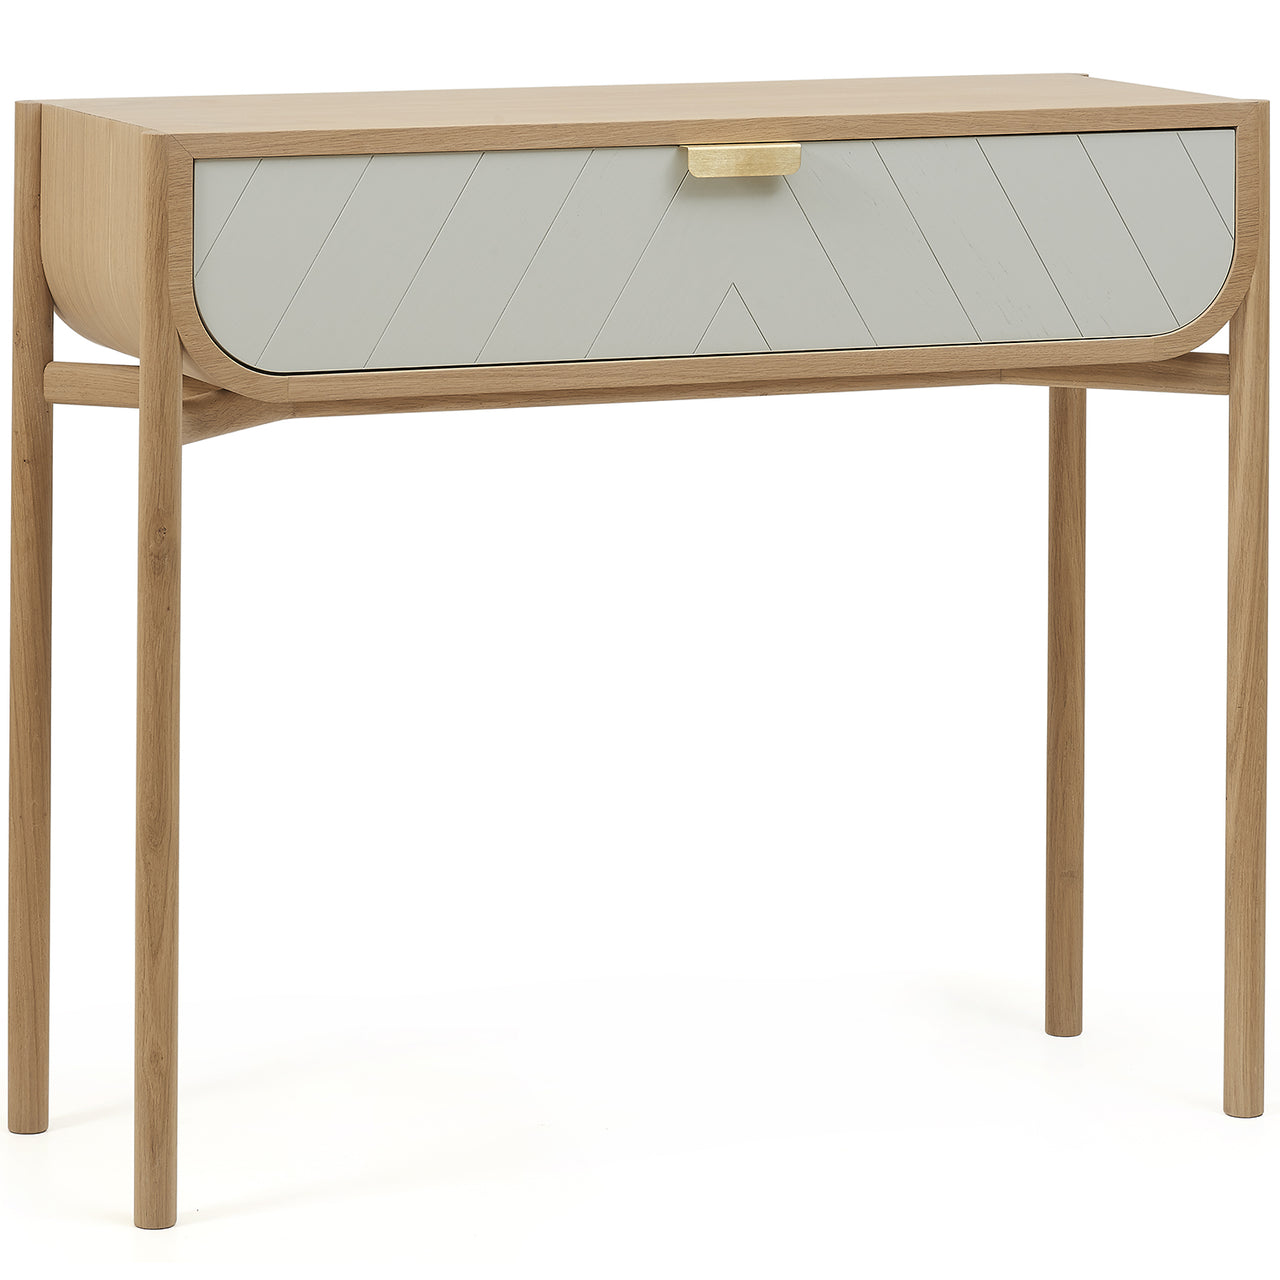 Marius Console: Light Grey